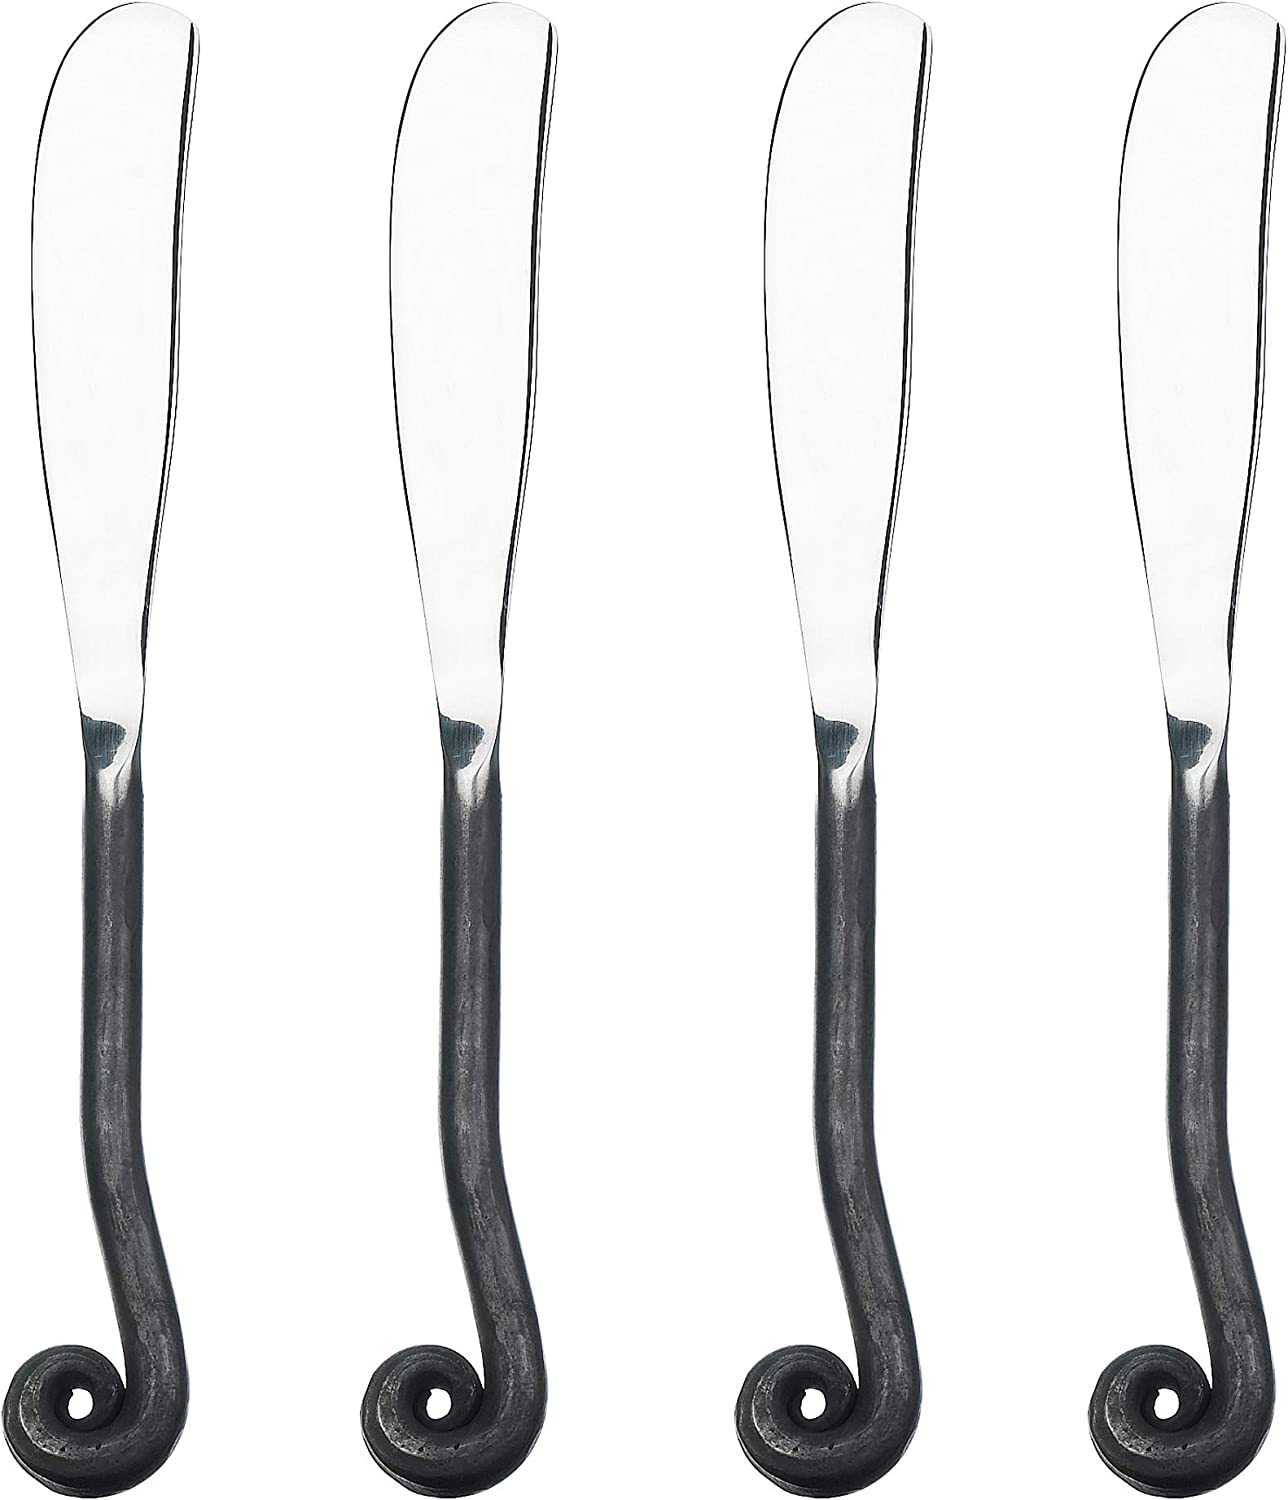 Gourmet Settings 4-Piece Spreader Knife Set Treble Clef Collection, Polished/Matte Stainless Steel, Cheese and Butter Spreading Knives, Dishwasher Safe